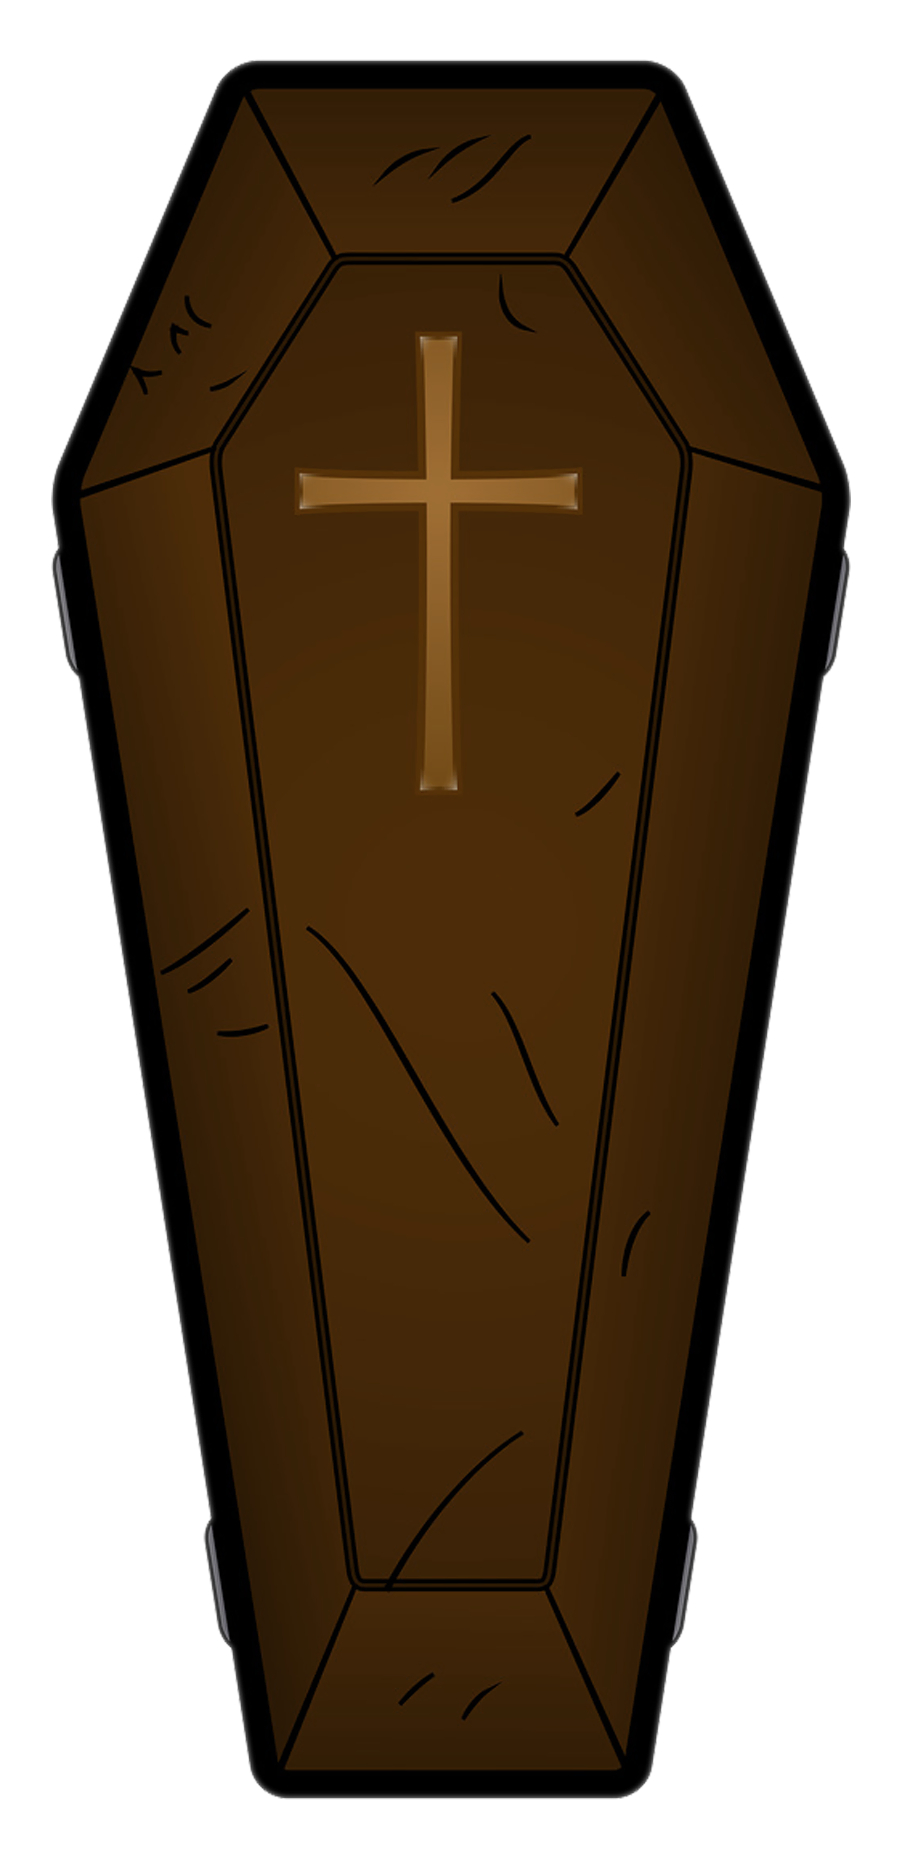 Coffin clipart png. Halloween brown picture gallery